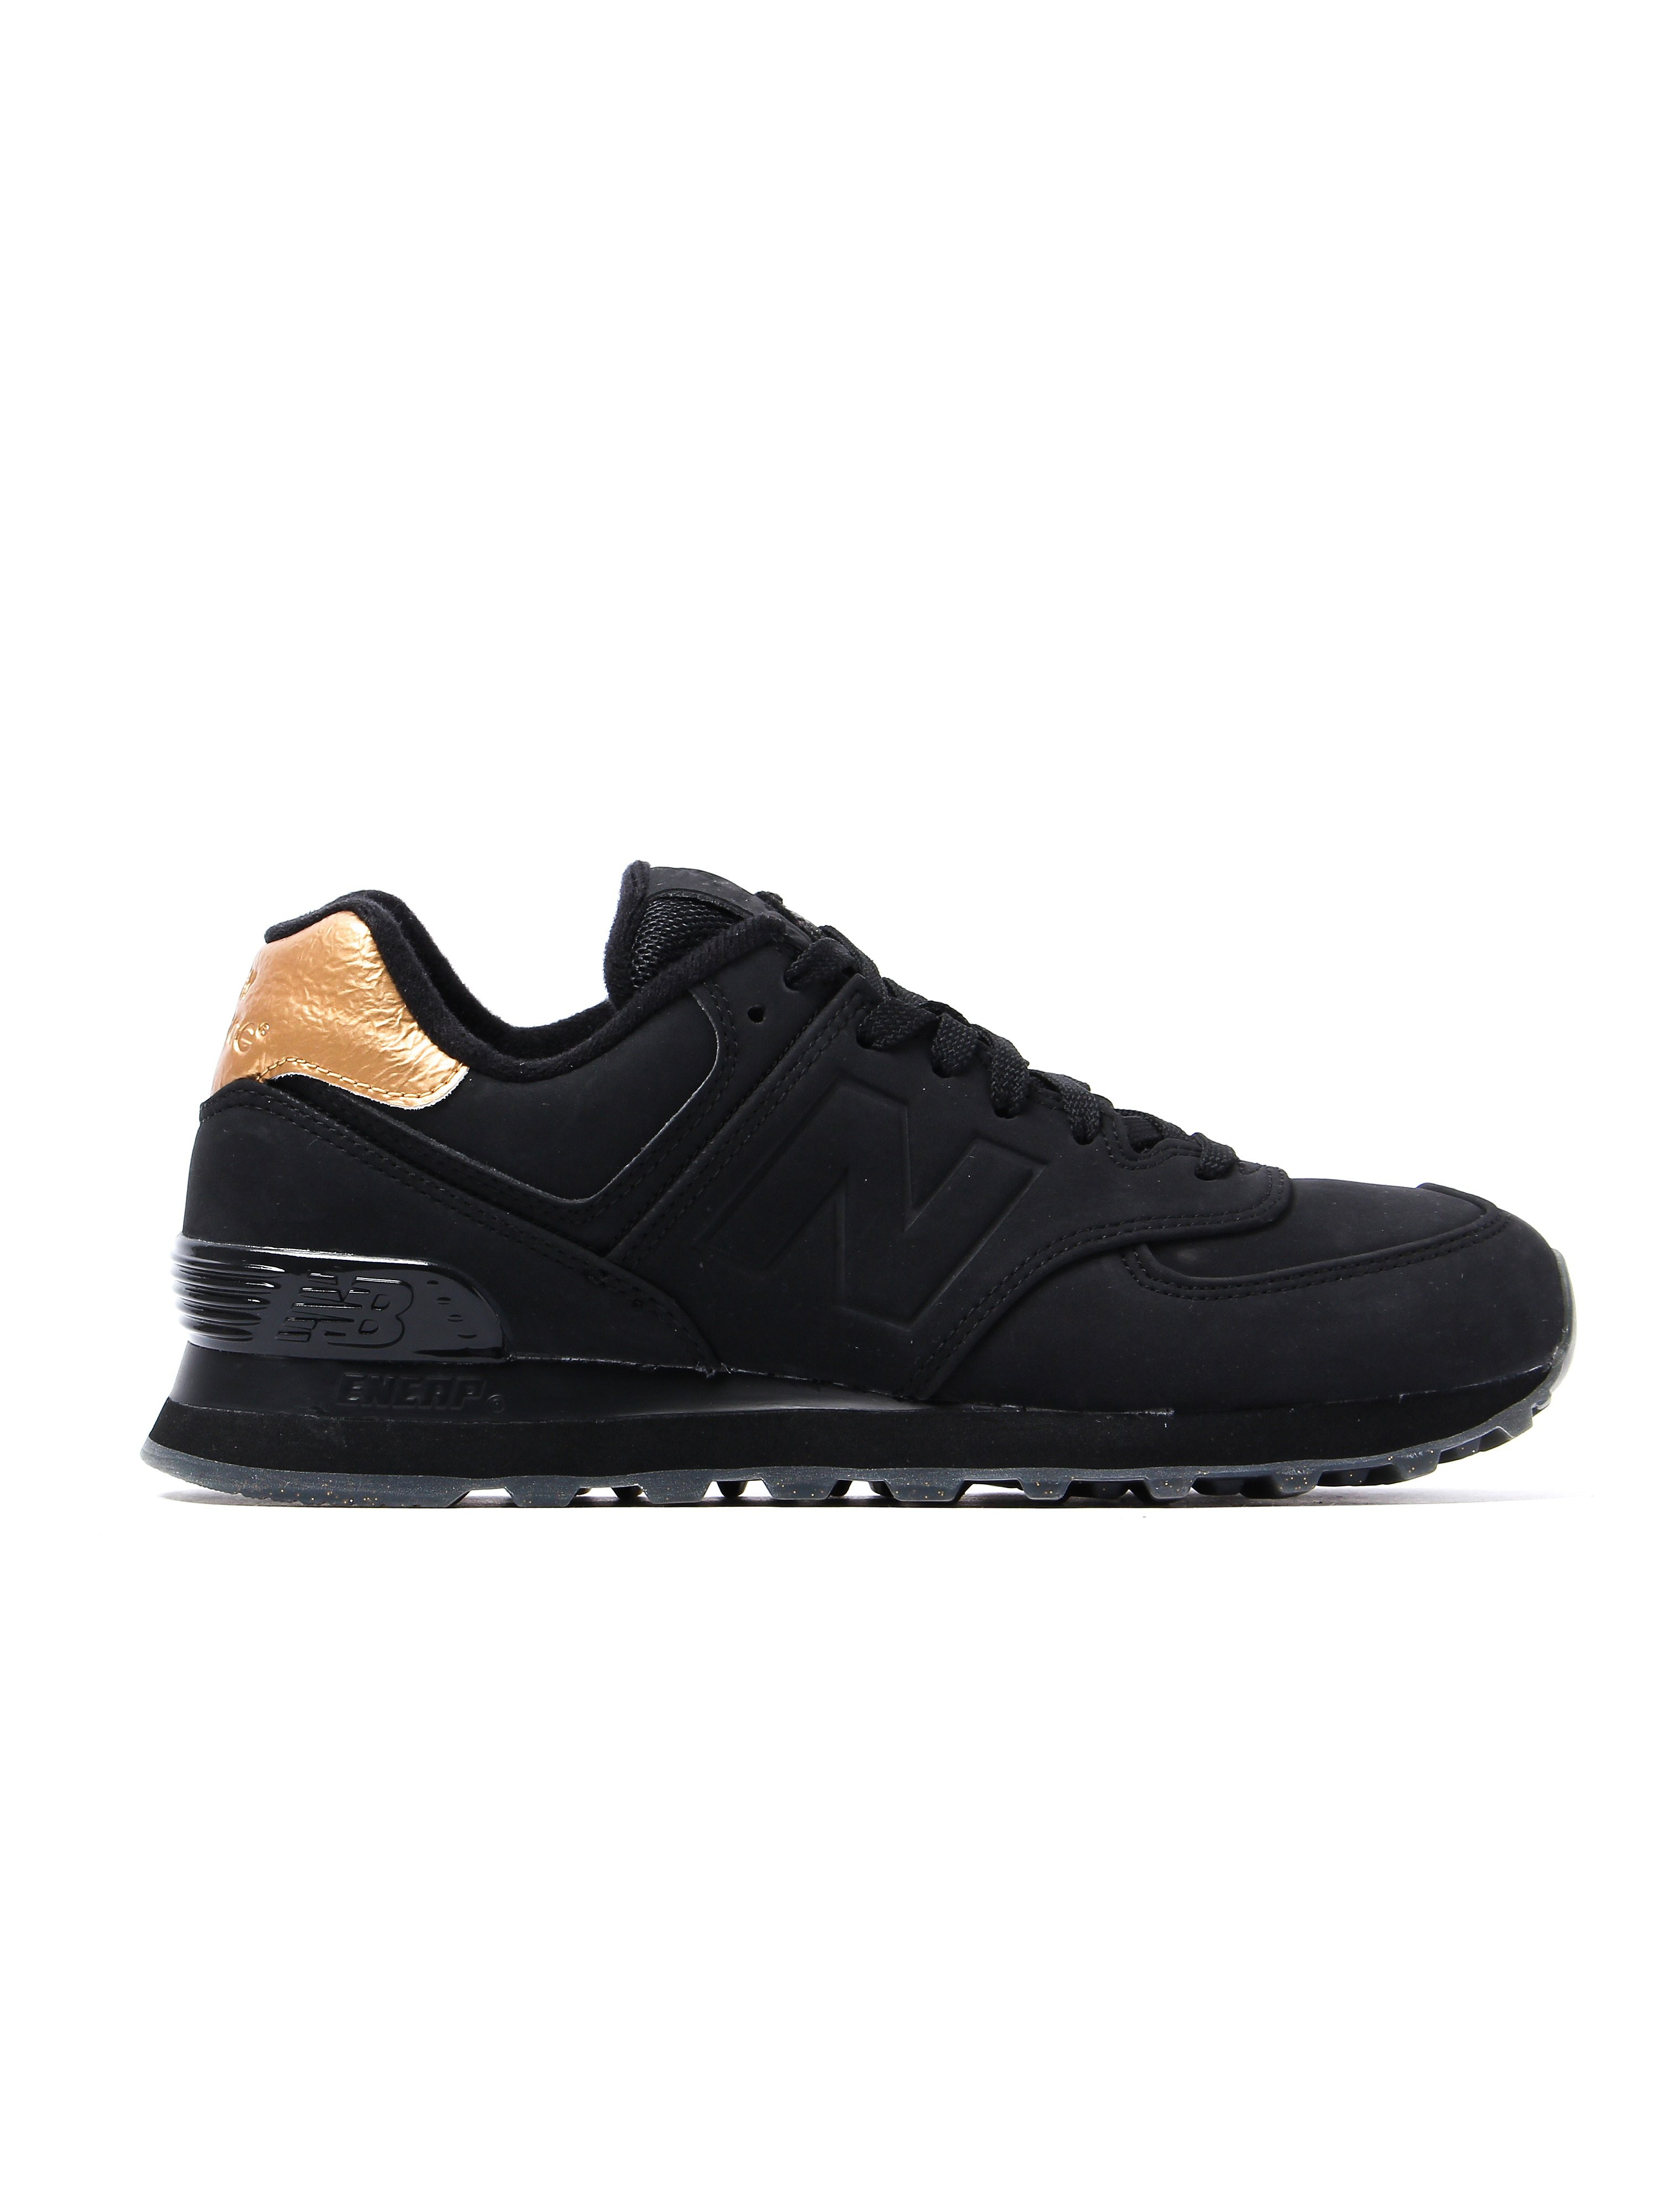 New Balance Women's 574 Low Top Trainers - Black & Gold